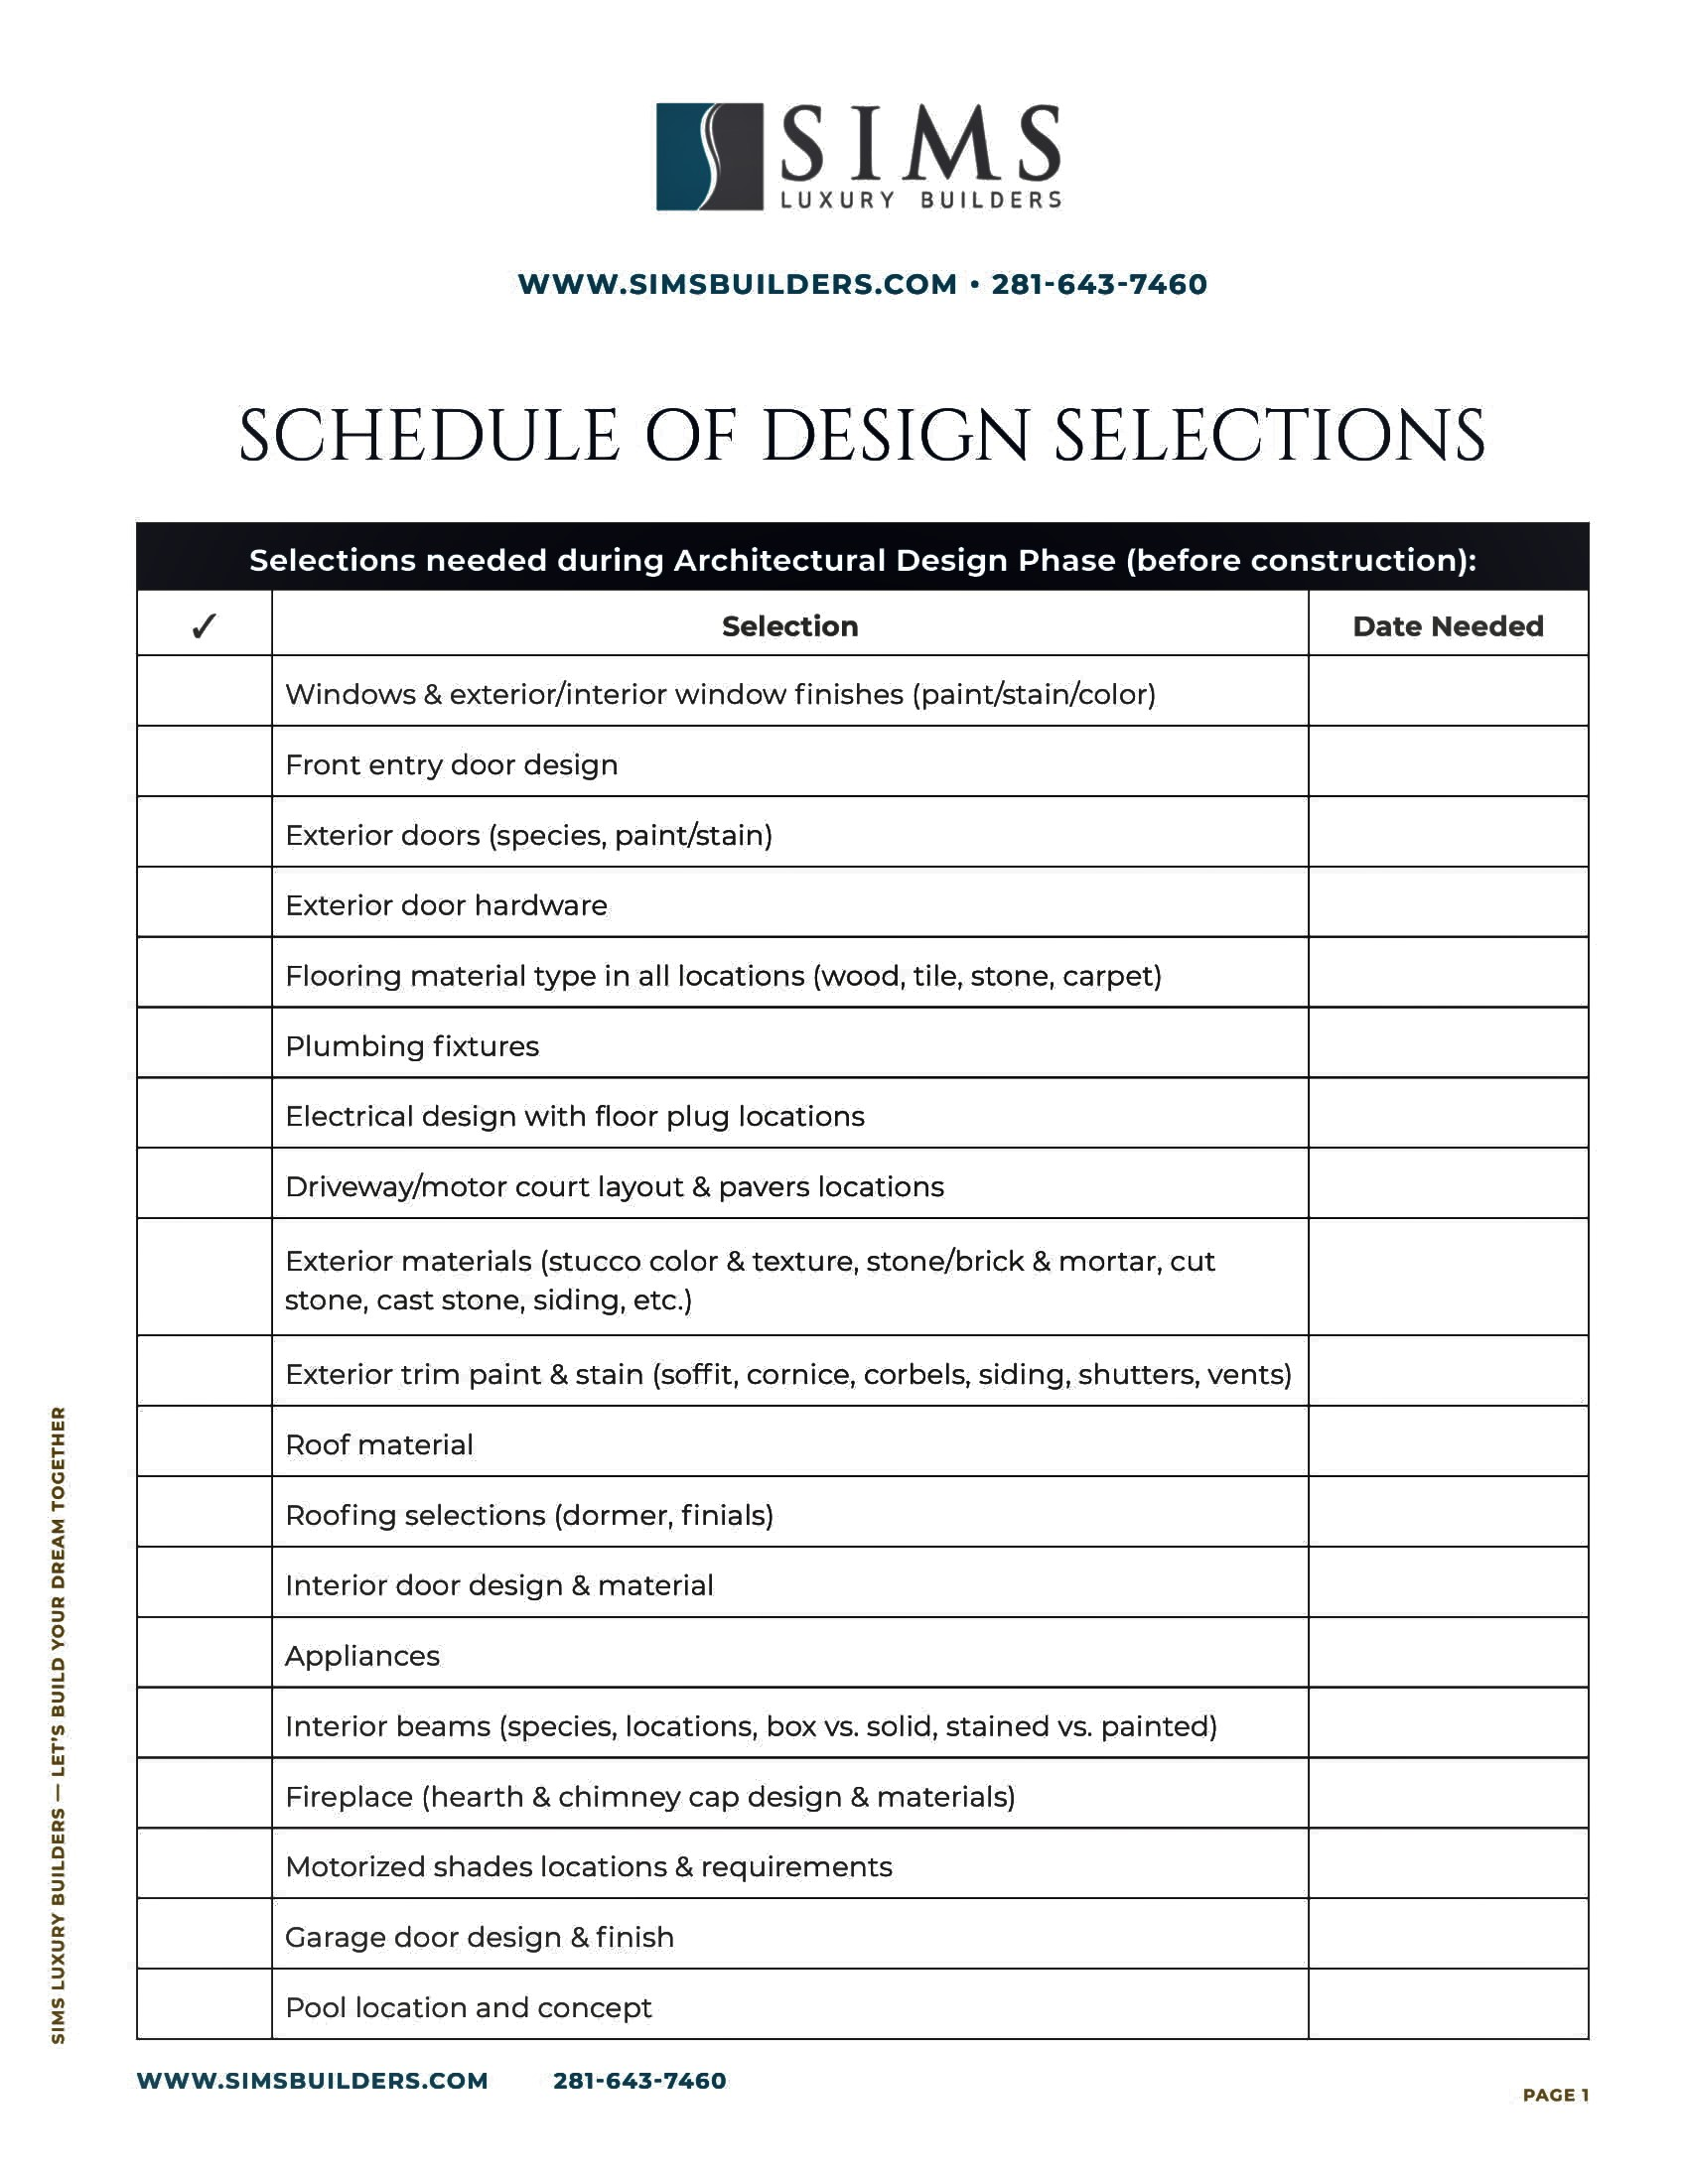 Schedule of Design Selections Resource Cover